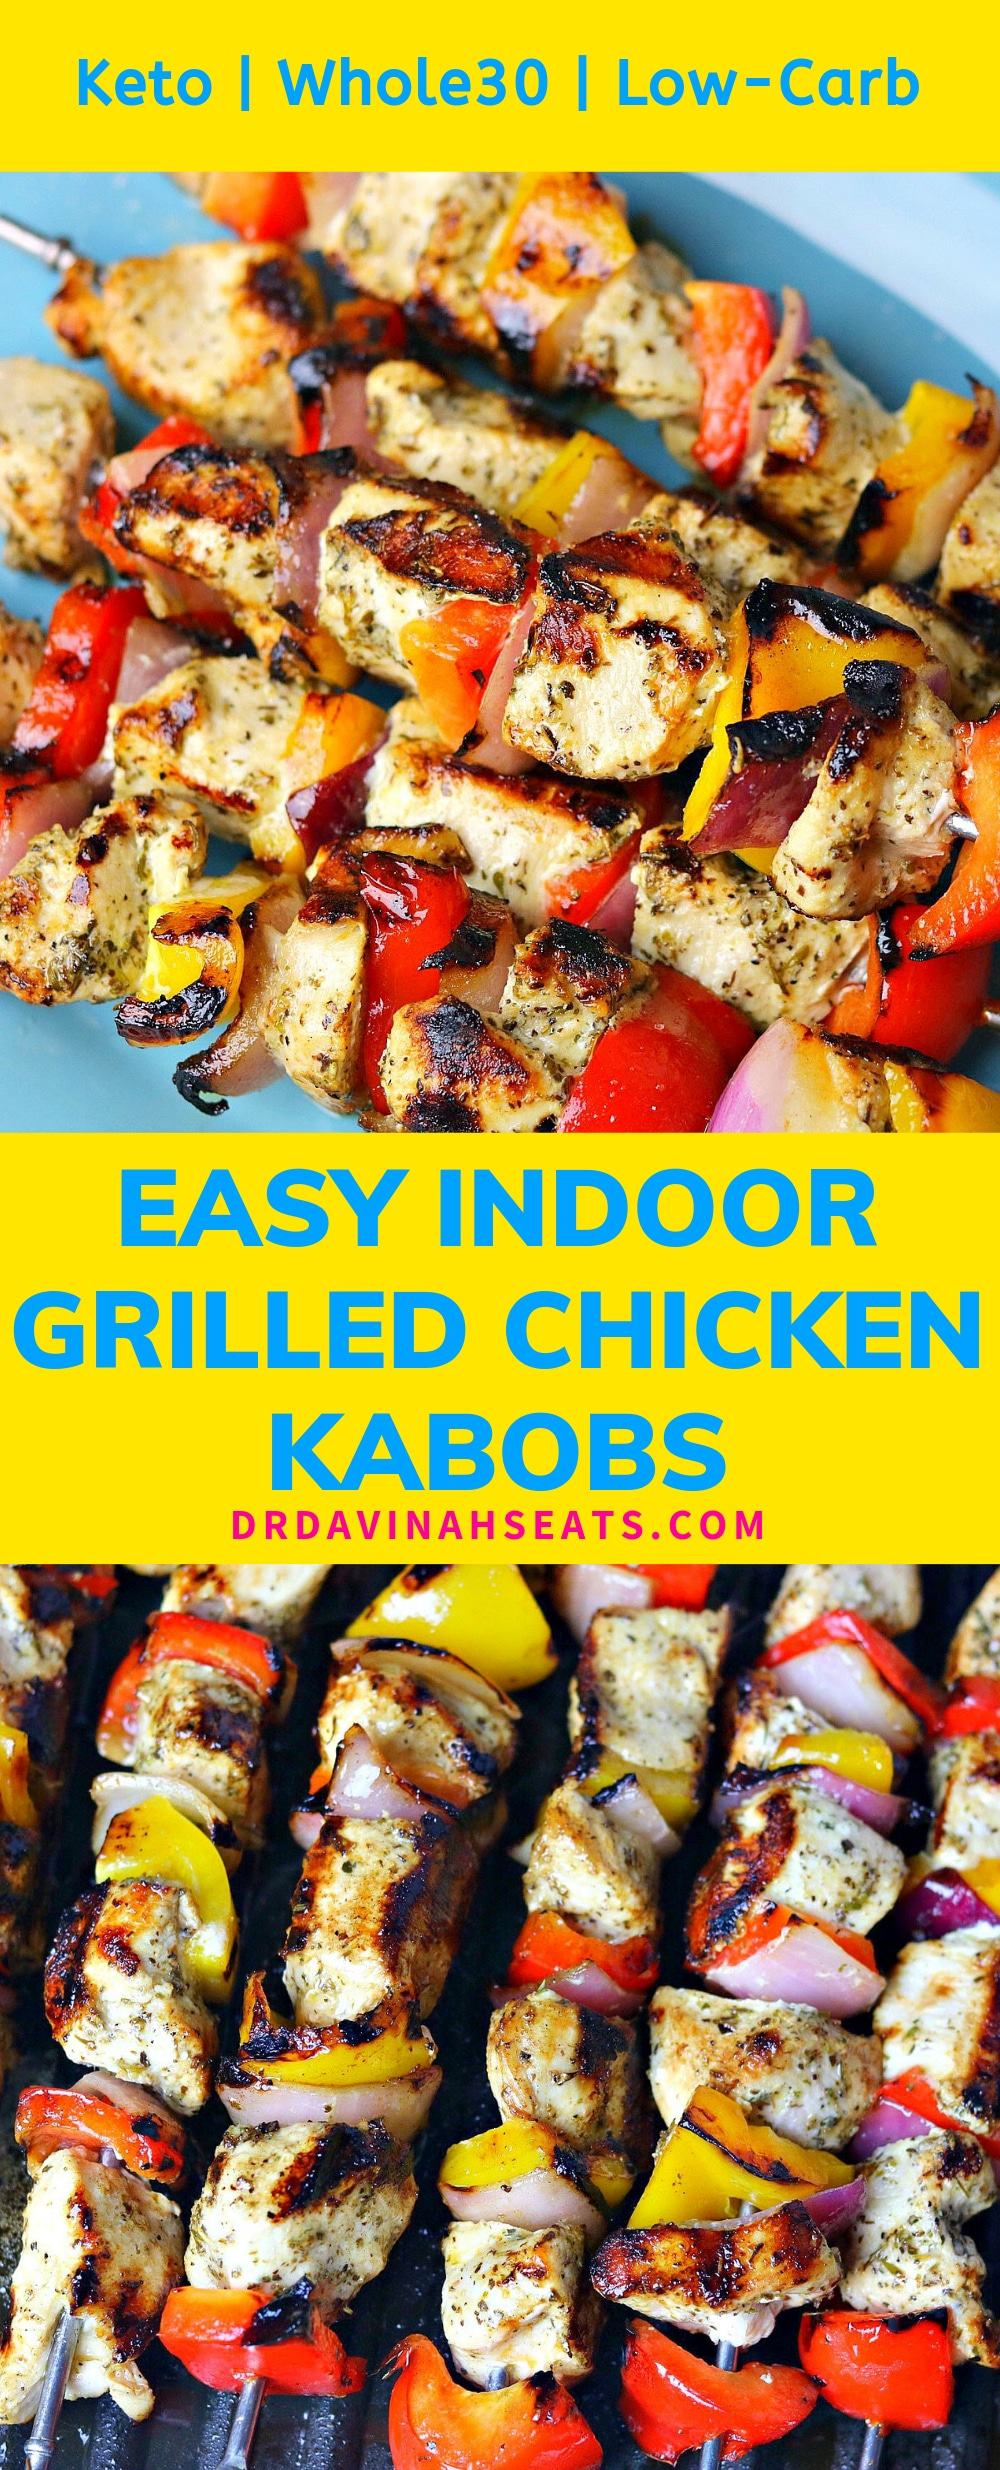 A Pinterest image for easy grilled chicken kabobs